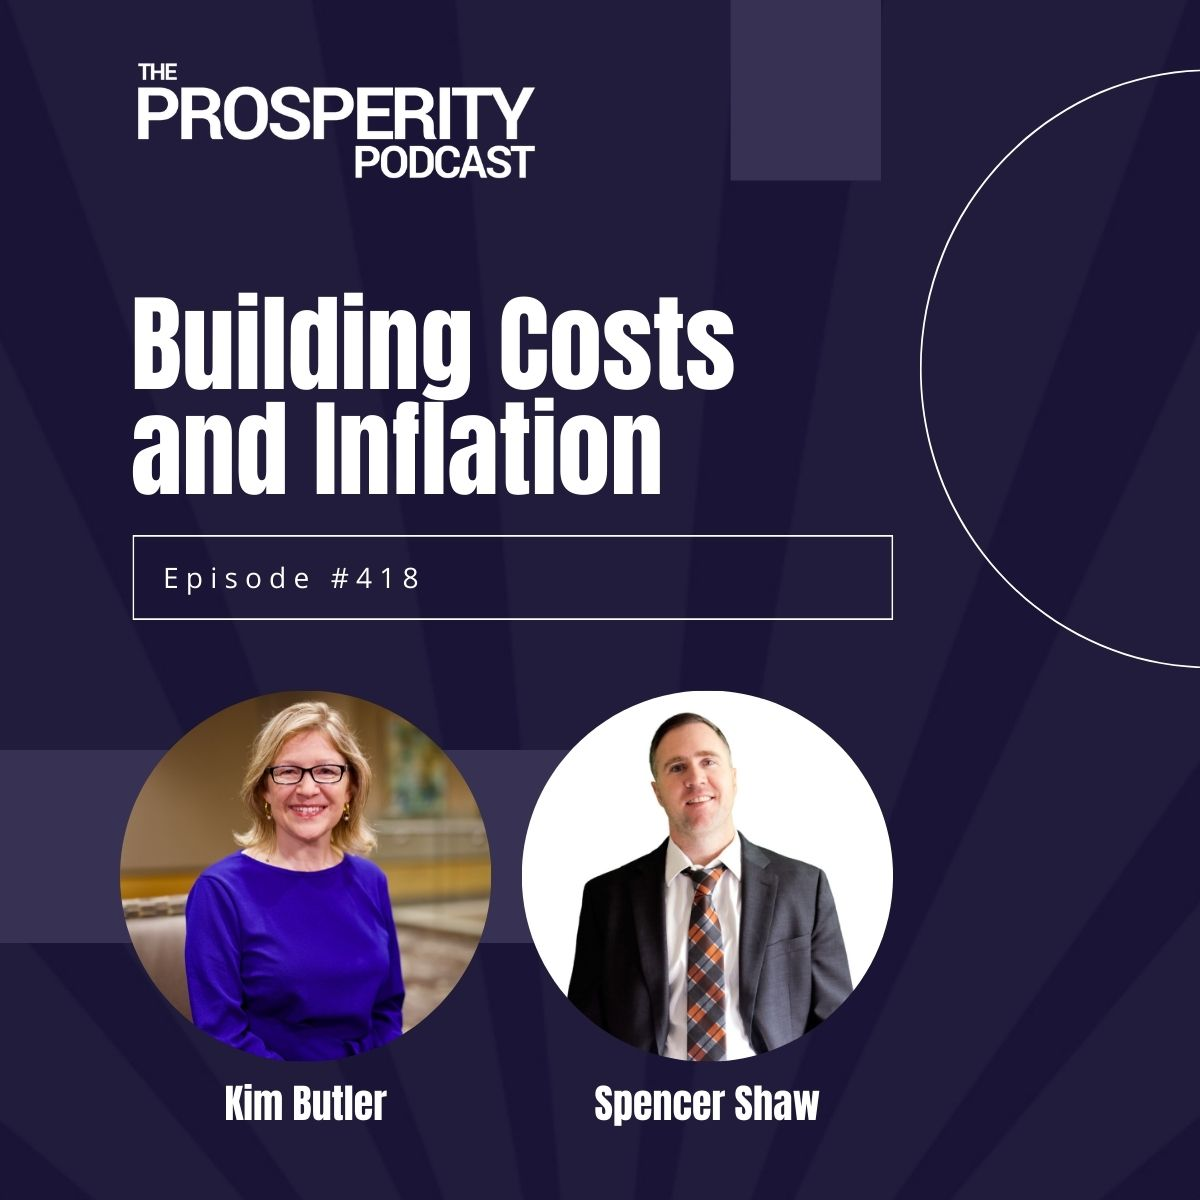 Building Costs and Inflation